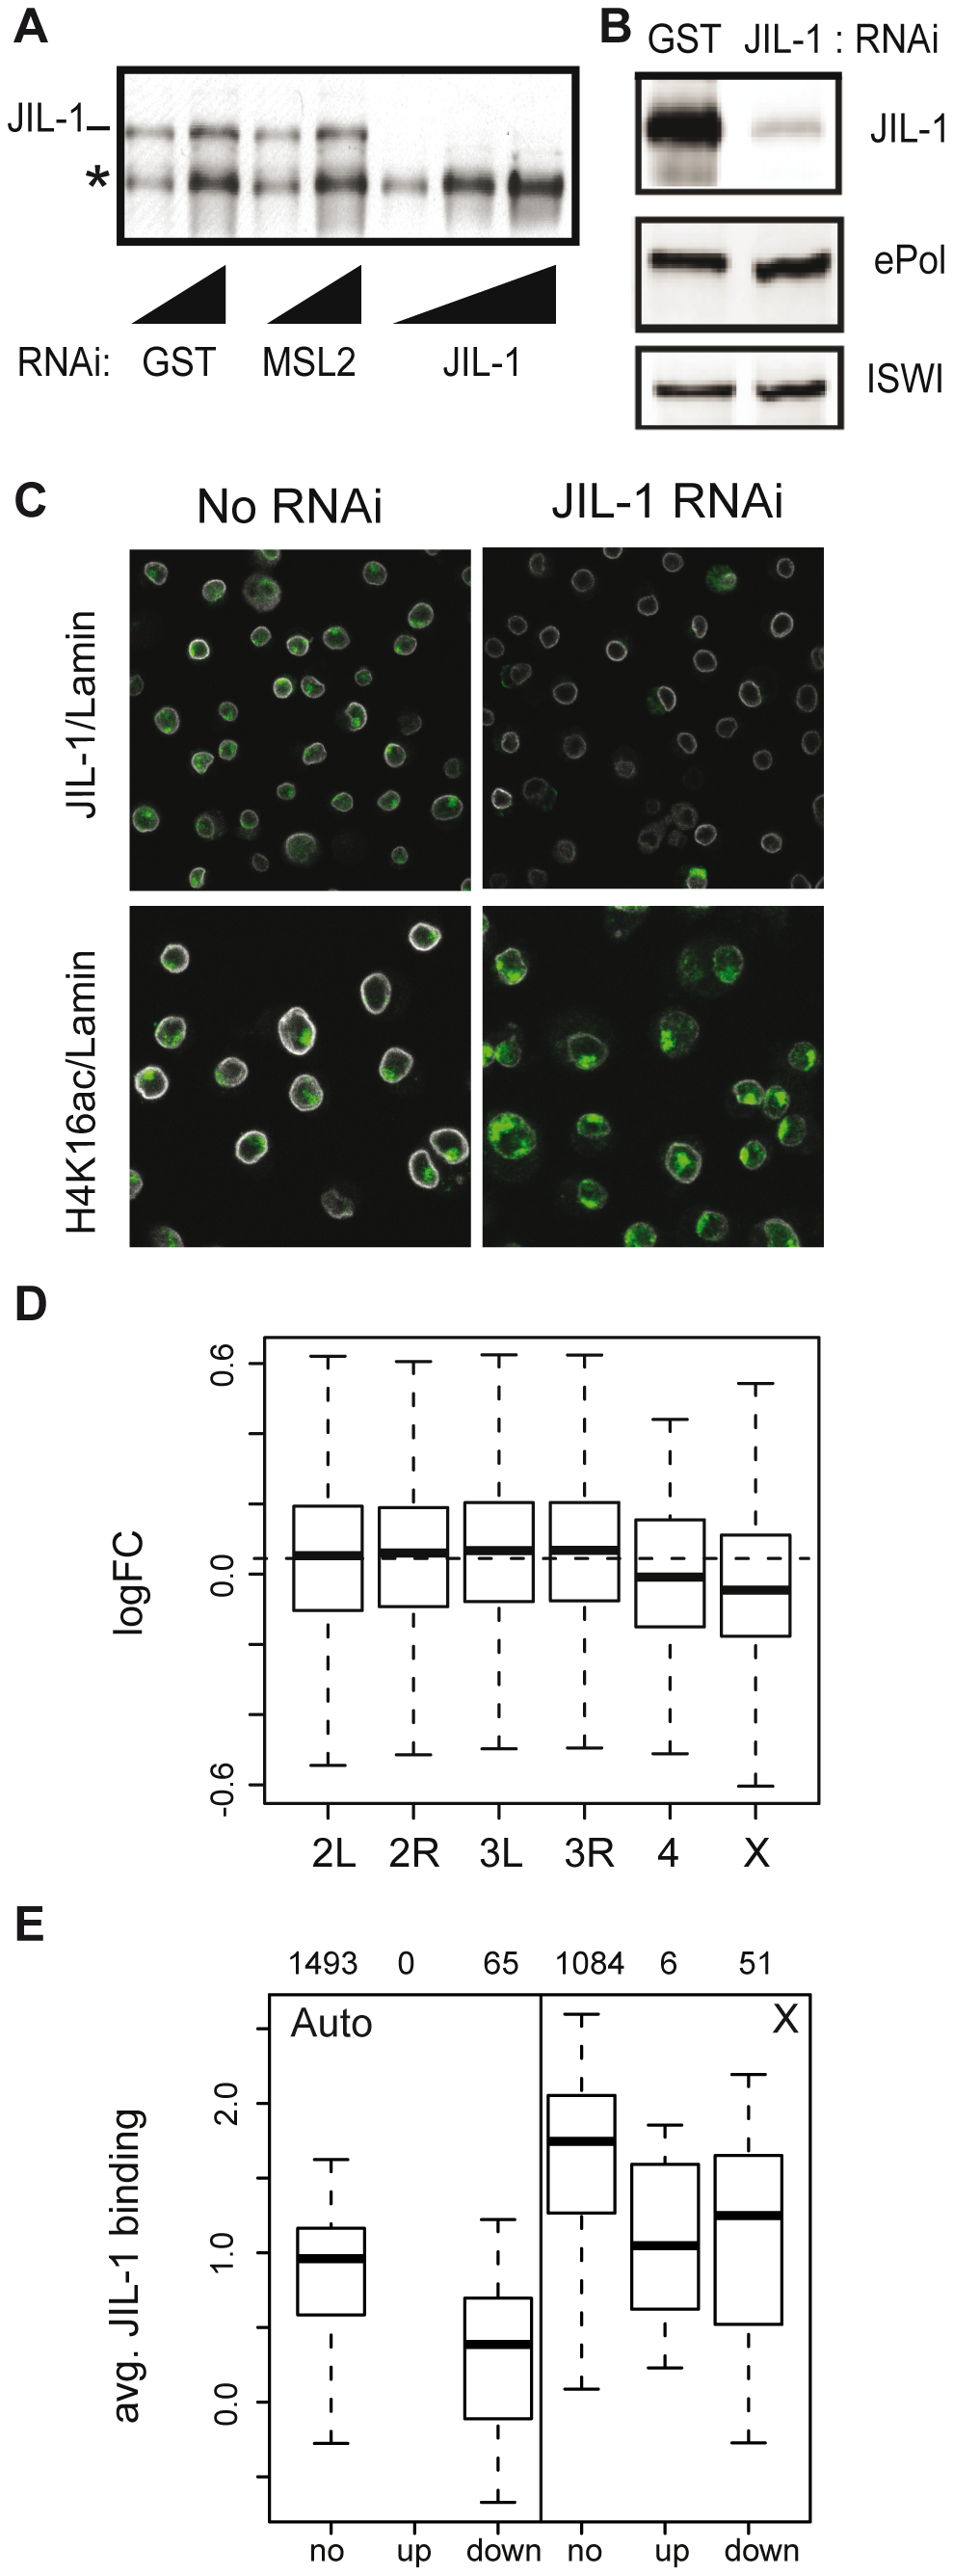 Effects of JIL-1 RNAi on gene expression and H4K16ac localization in SL2 cells.